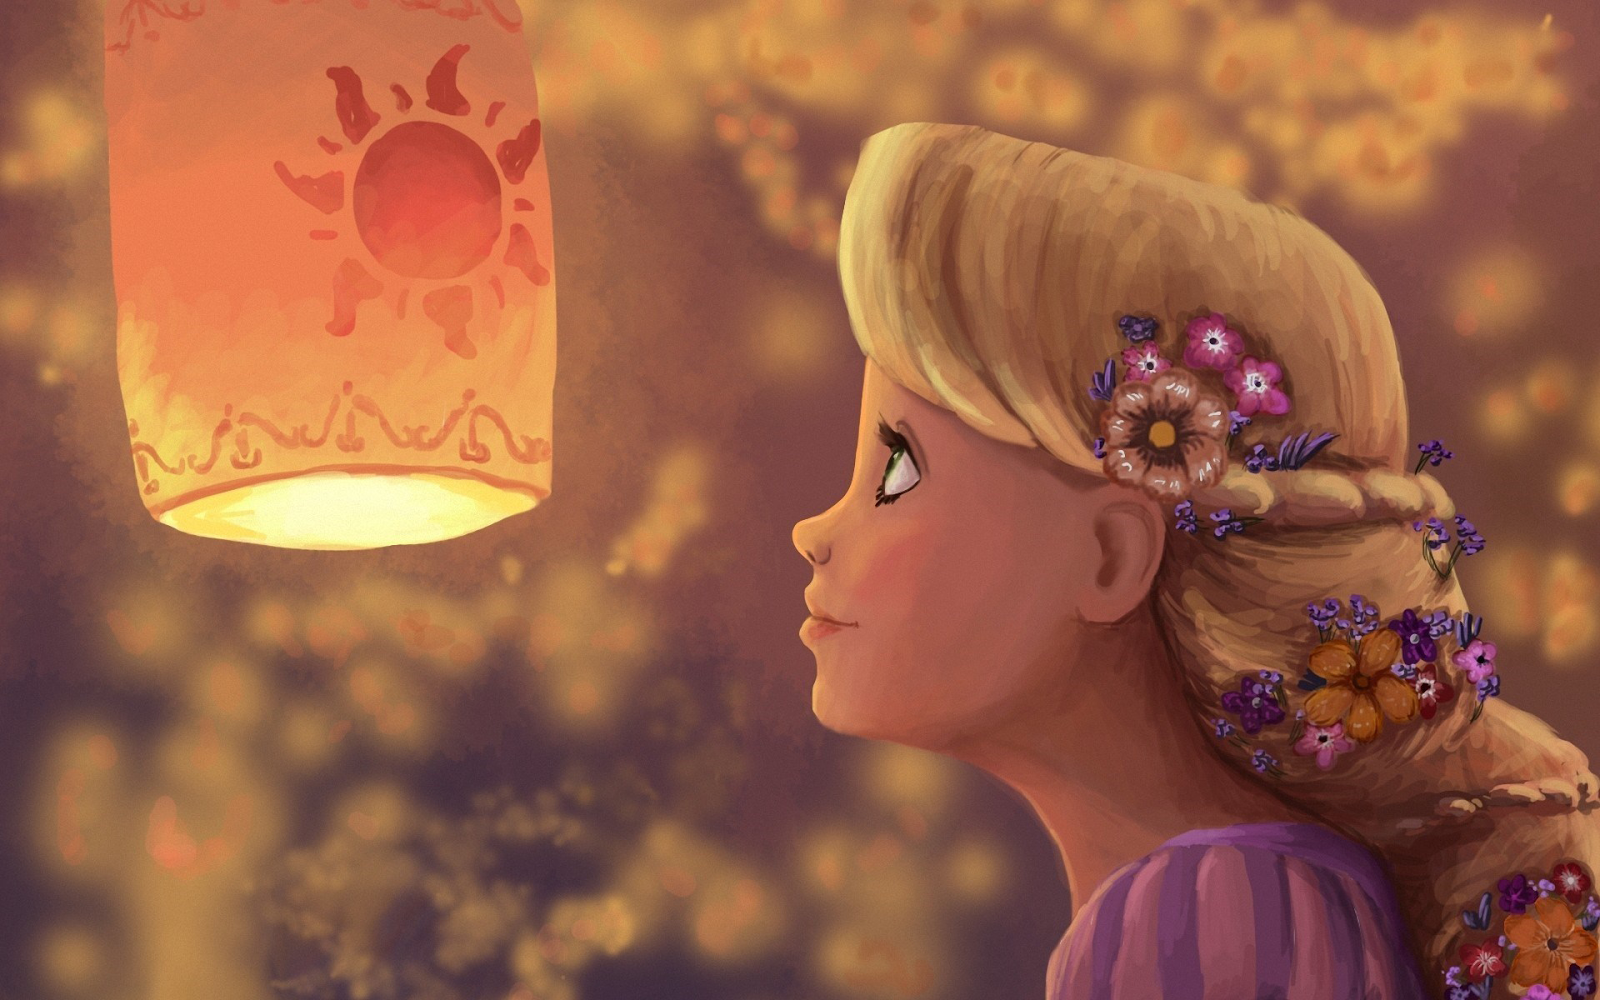 Tangleds Rapunzel Disney cartoon illustration HD Wallpaper HD 1600x1000